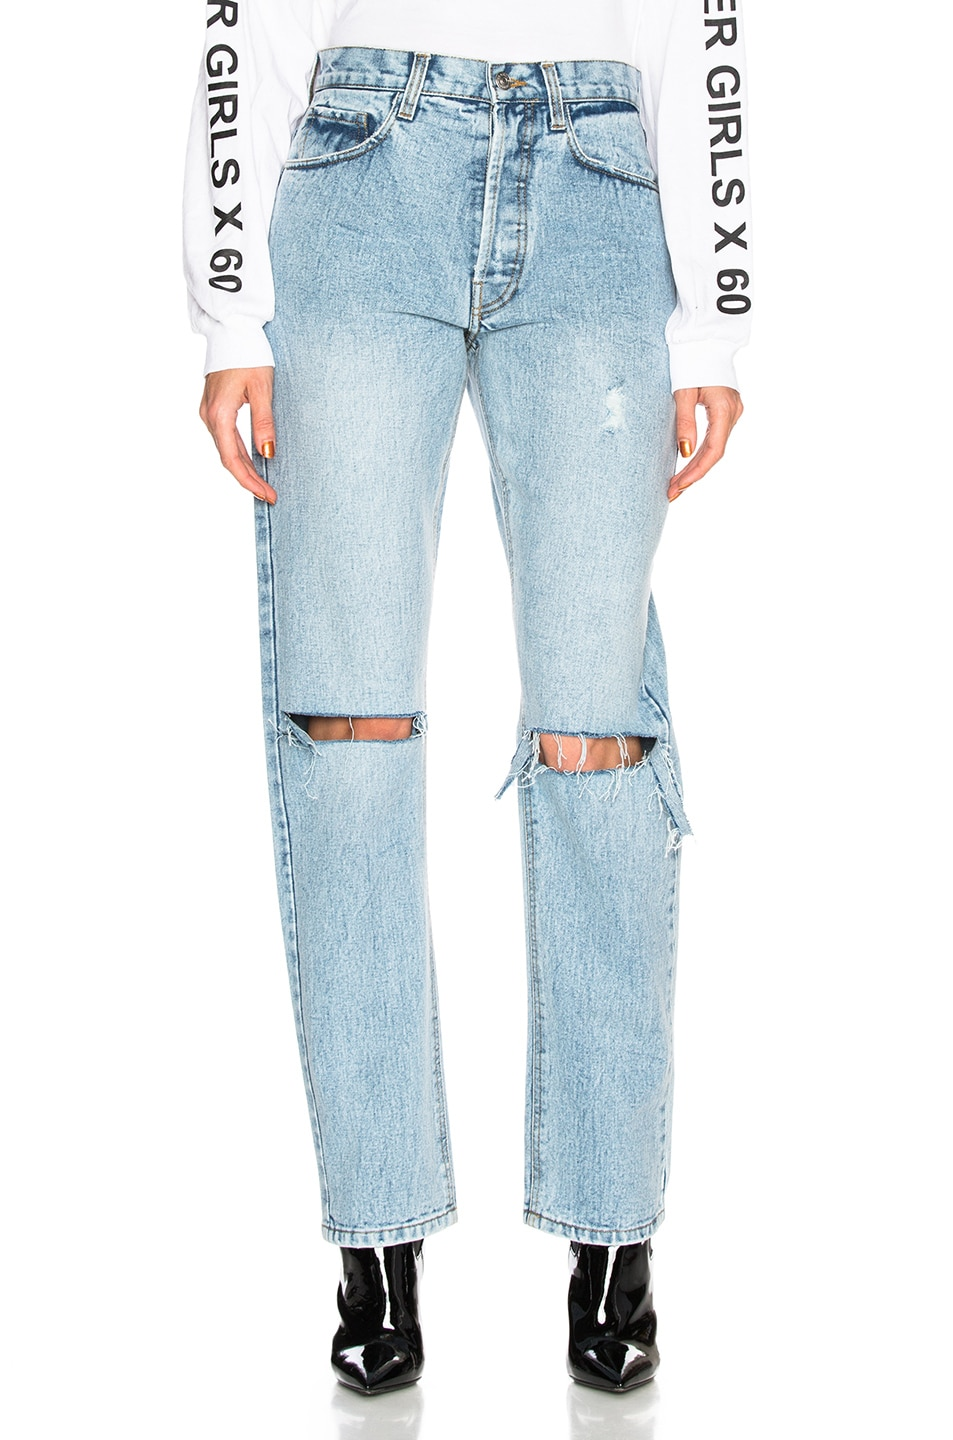 PALMER GIRLS X MISS SIXTY MOM JEANS IN BLUE